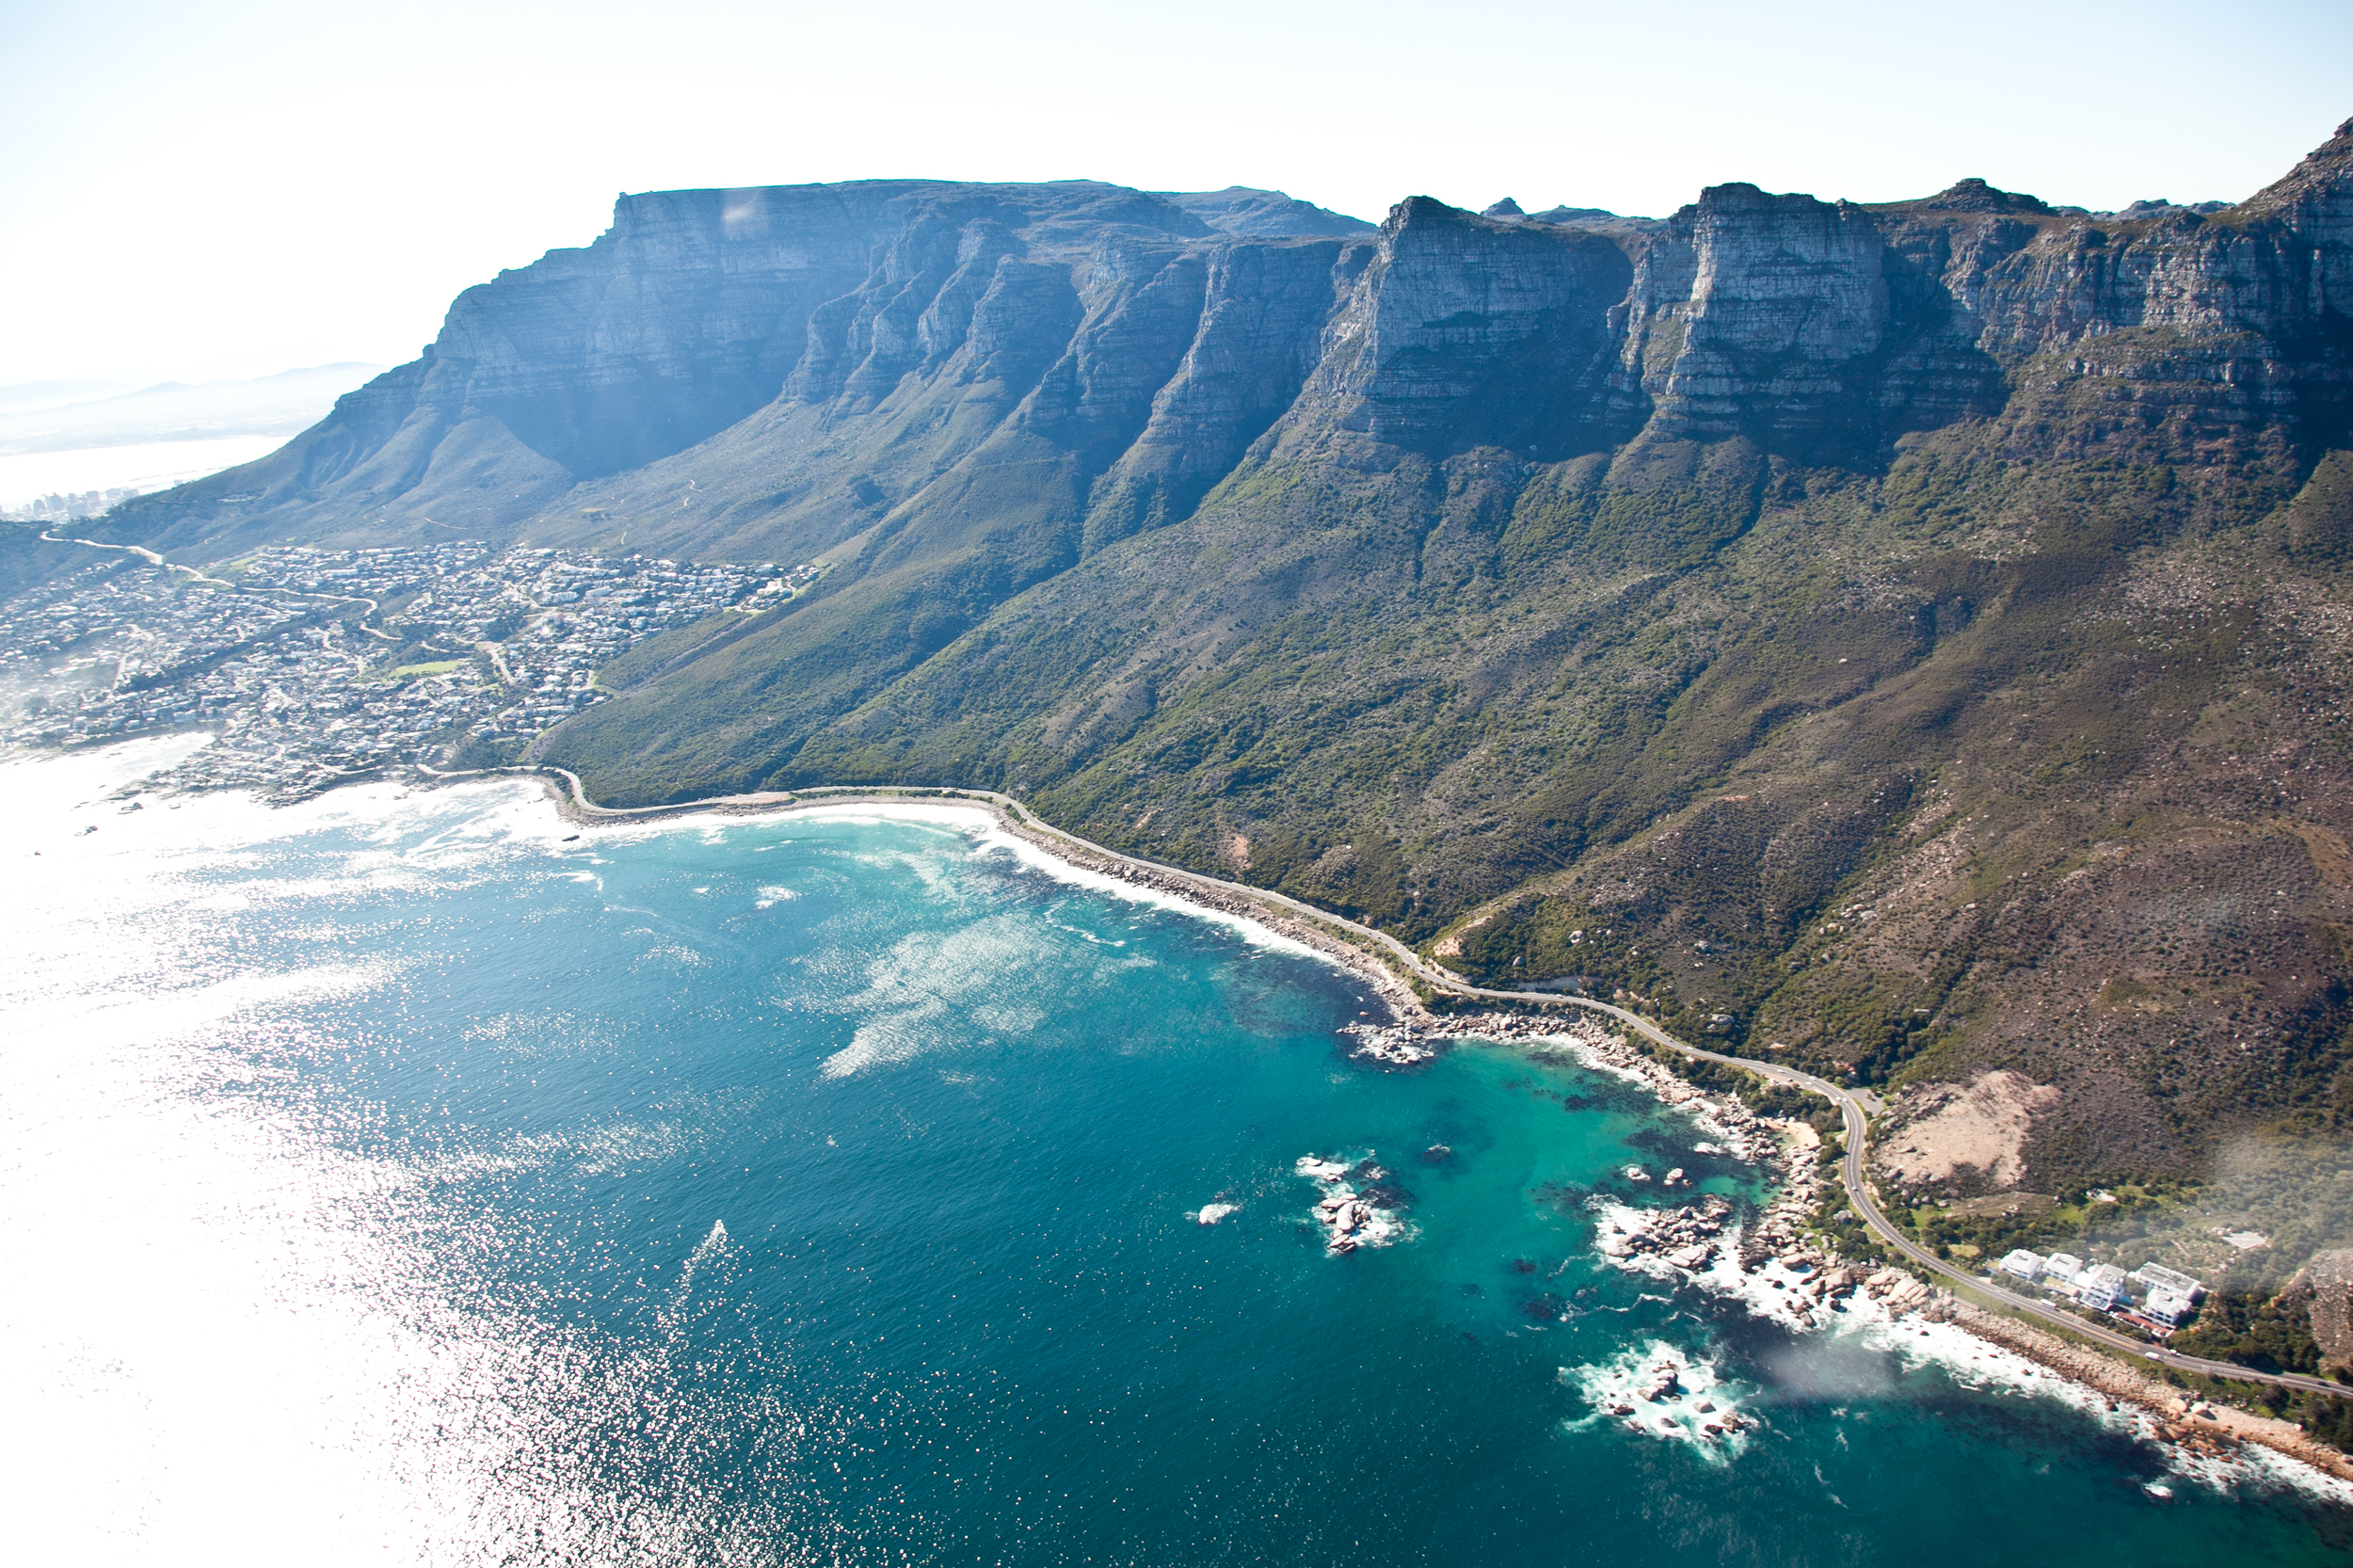 IMG_4806-cape-town-south-africa-helicopter-ride-trisa-taro.jpg